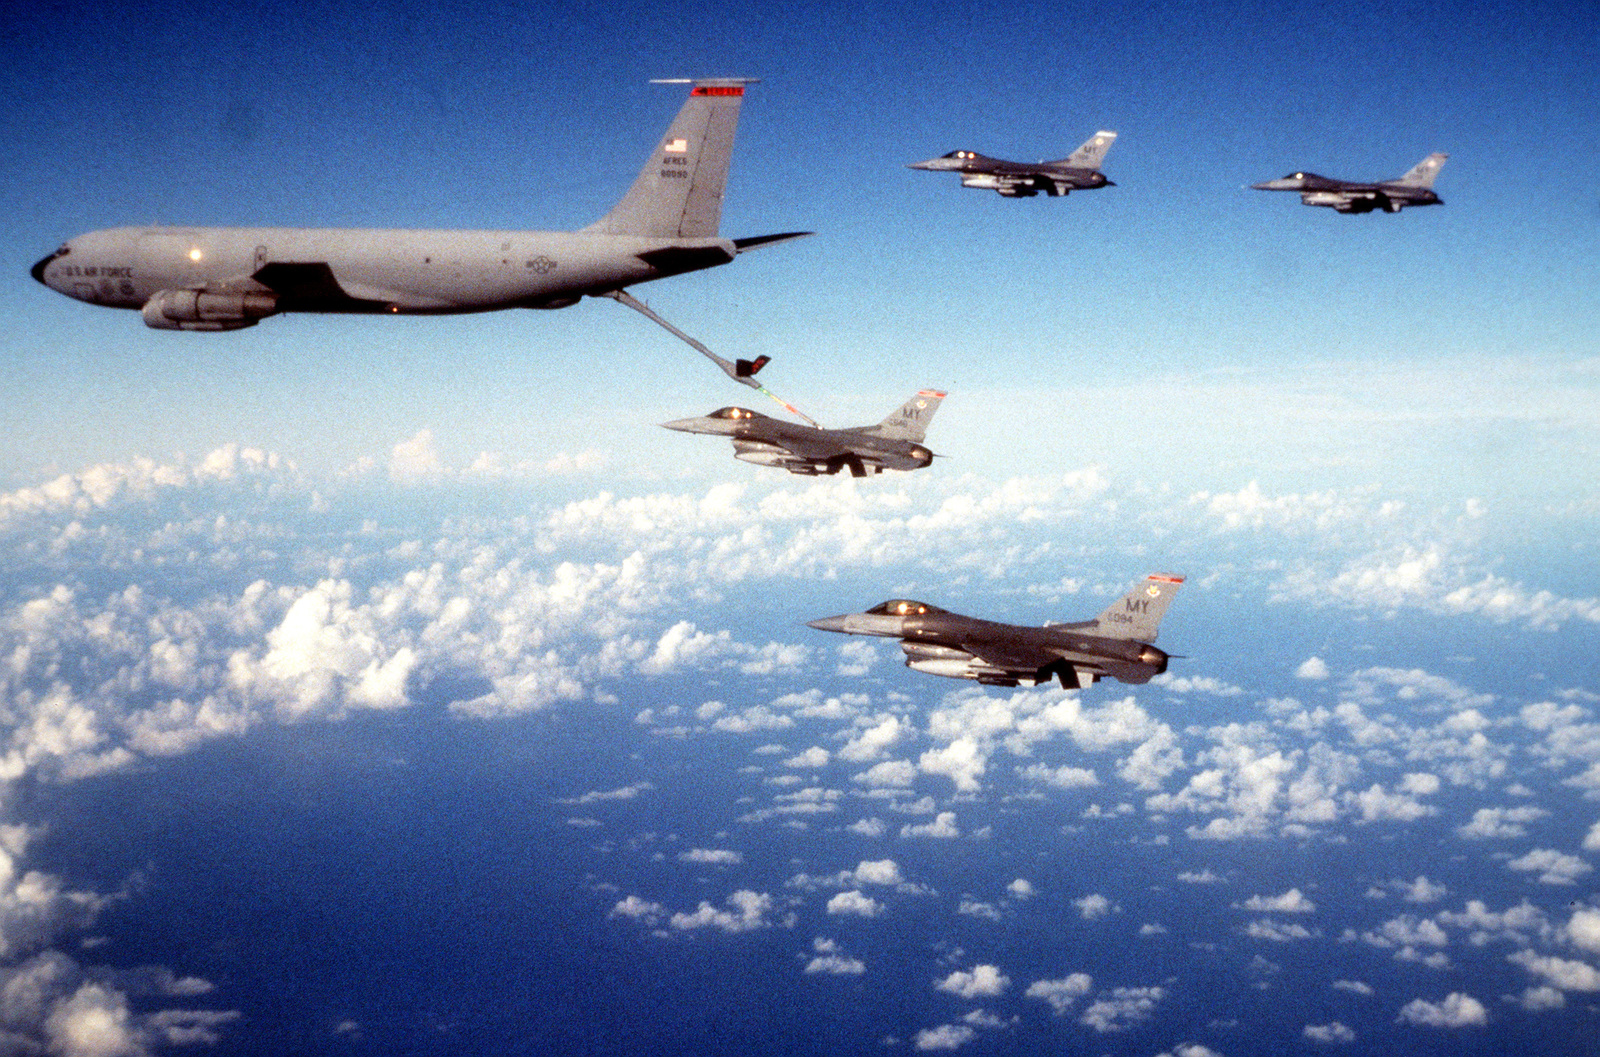 A wide angle view of a US Air Force KC-135 Stratotanker as it refuels a formation of F-16D Fighting Falcons. The Fighting Falcons are part of a joint strike package of US Navy F/A-18 Hornets and US Air Force F-15 Eagles for the exercise. This exercise involved each branch of the armed services and all major units of the US Atlantic Command.(Exact date unknown)